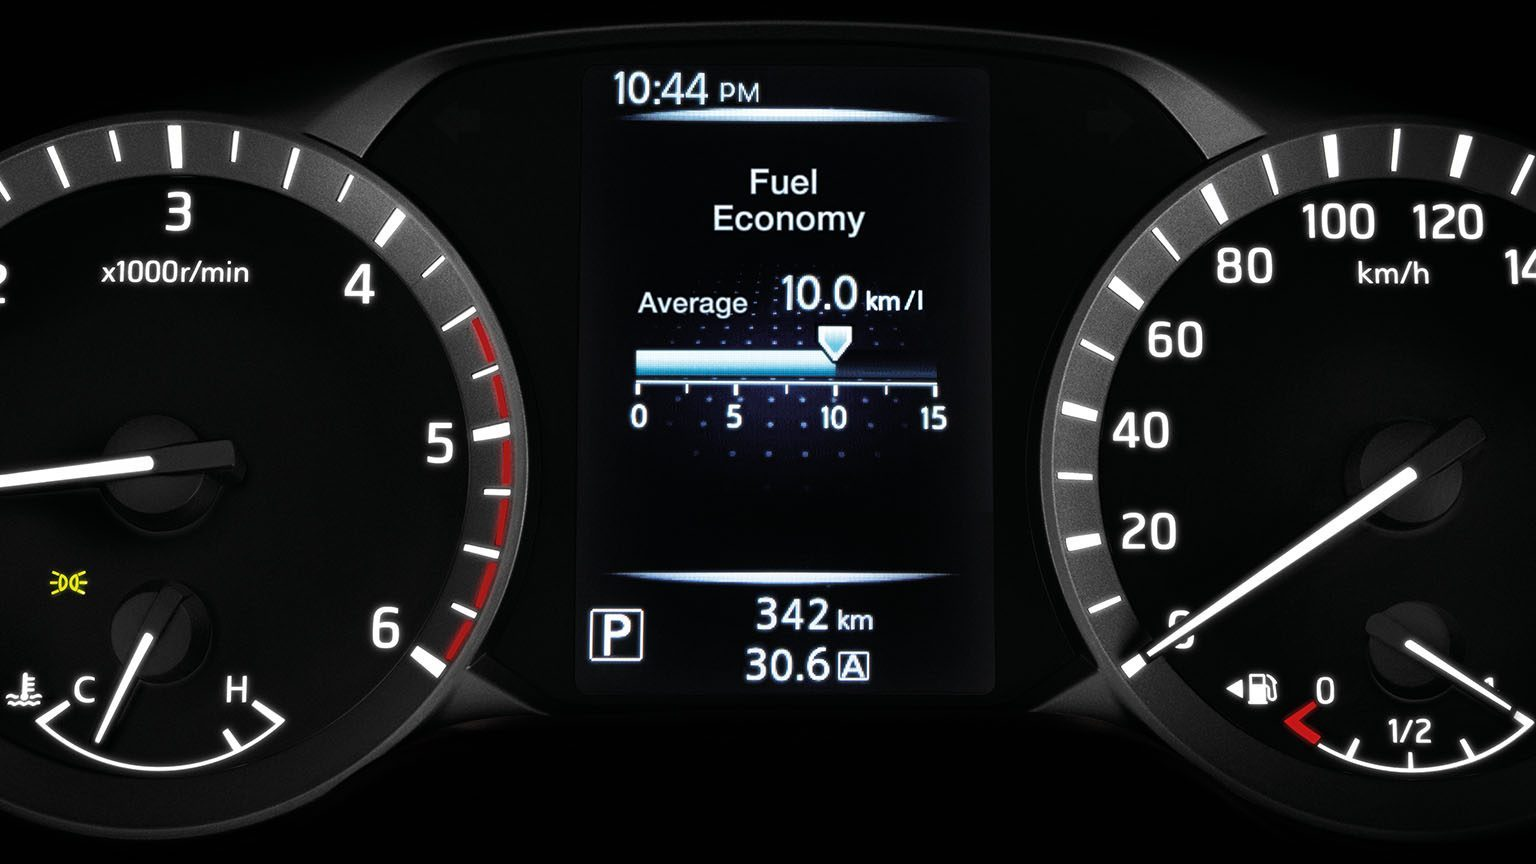 Fuel-economy Display